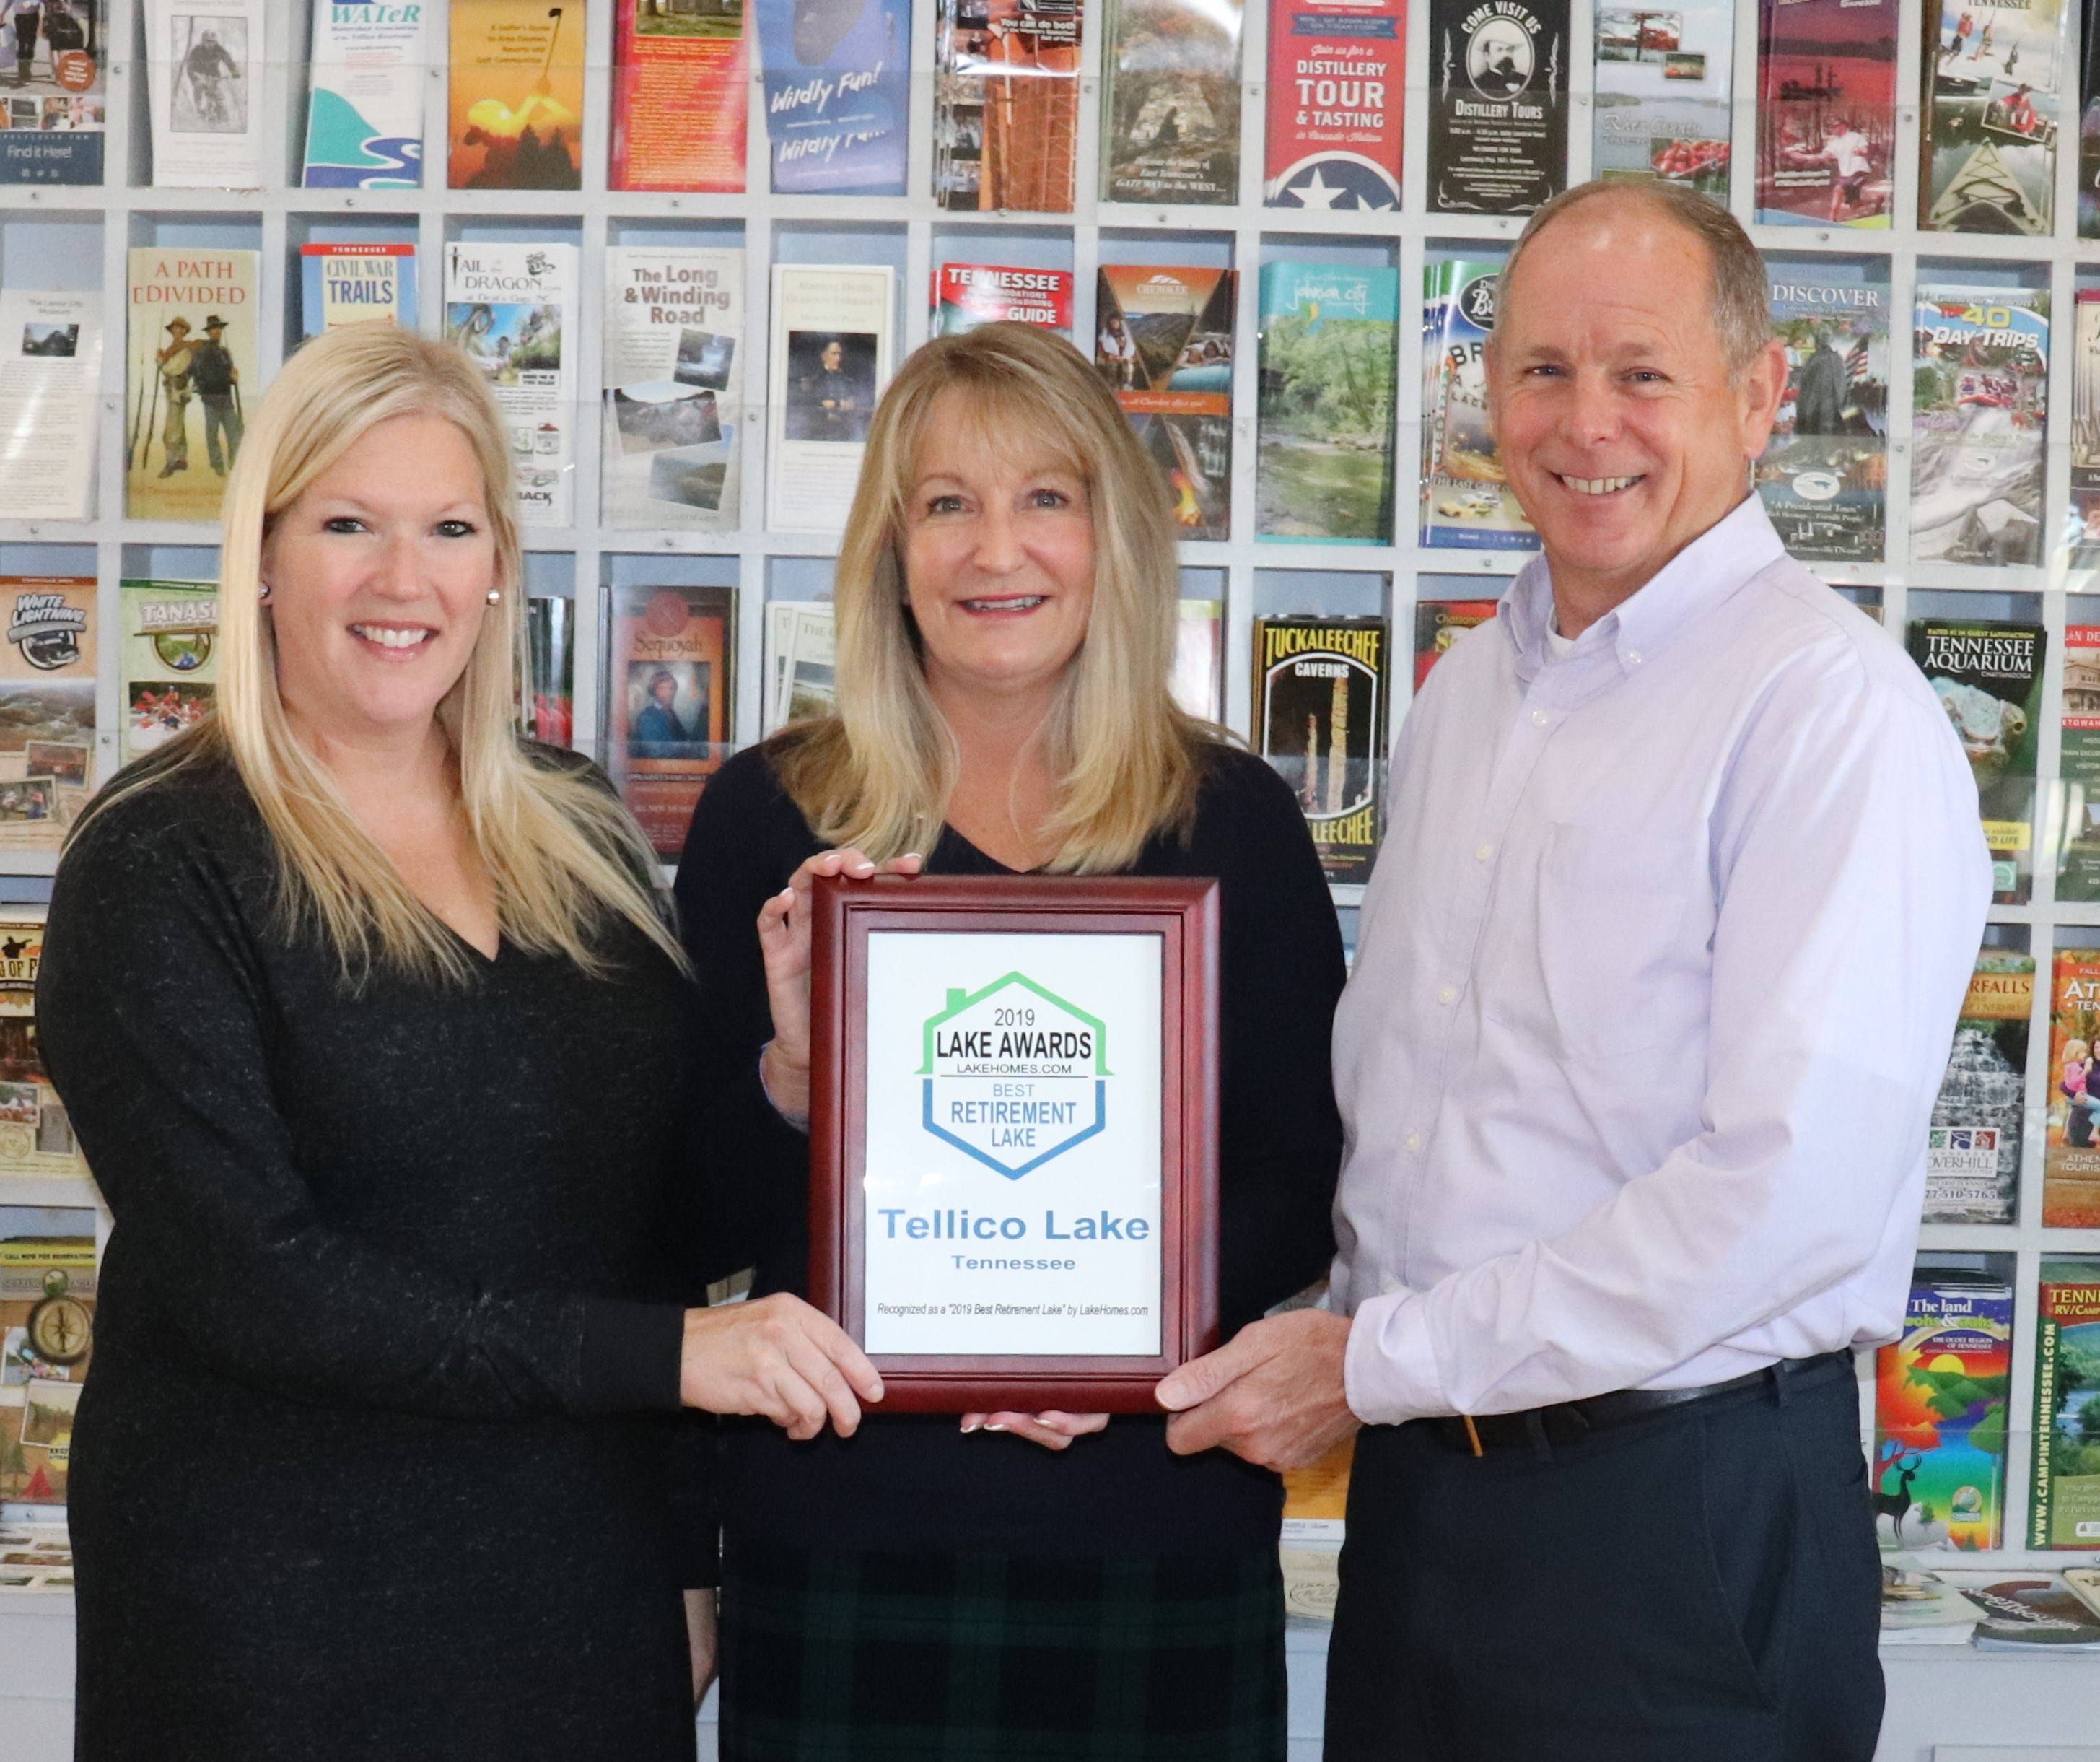 From L to R: Rachel Baker, Director of Tourism for Visit Loudon County; Karen Packett of Lake Homes Realty Listing/Selling Broker on Tellico Lake and Fort Loudoun Lake; Rodney Grugin, President of Loudon County Chamber of Commerce.